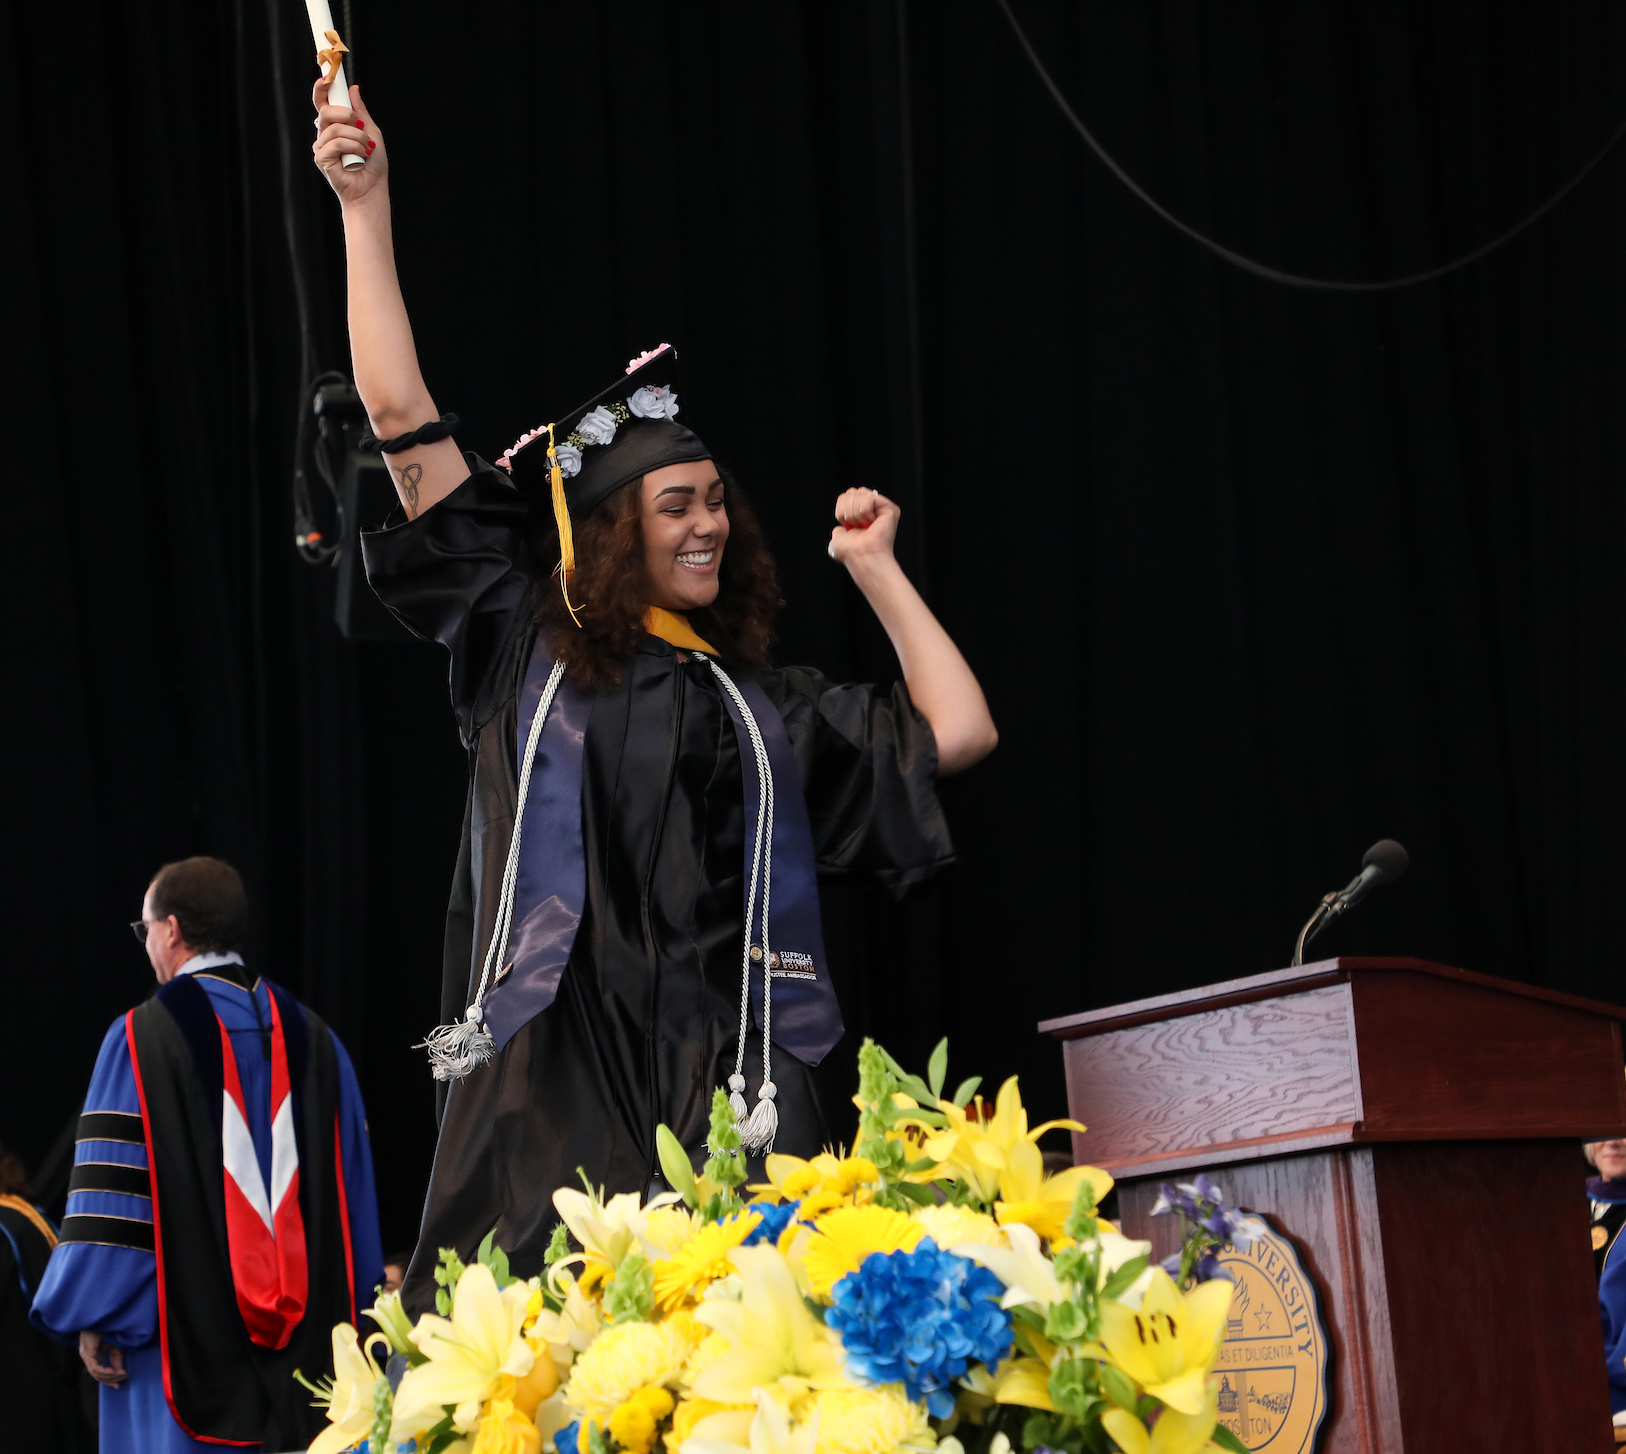 Brenna lifts her scroll high above her head as she crosses the stage at Commencement.